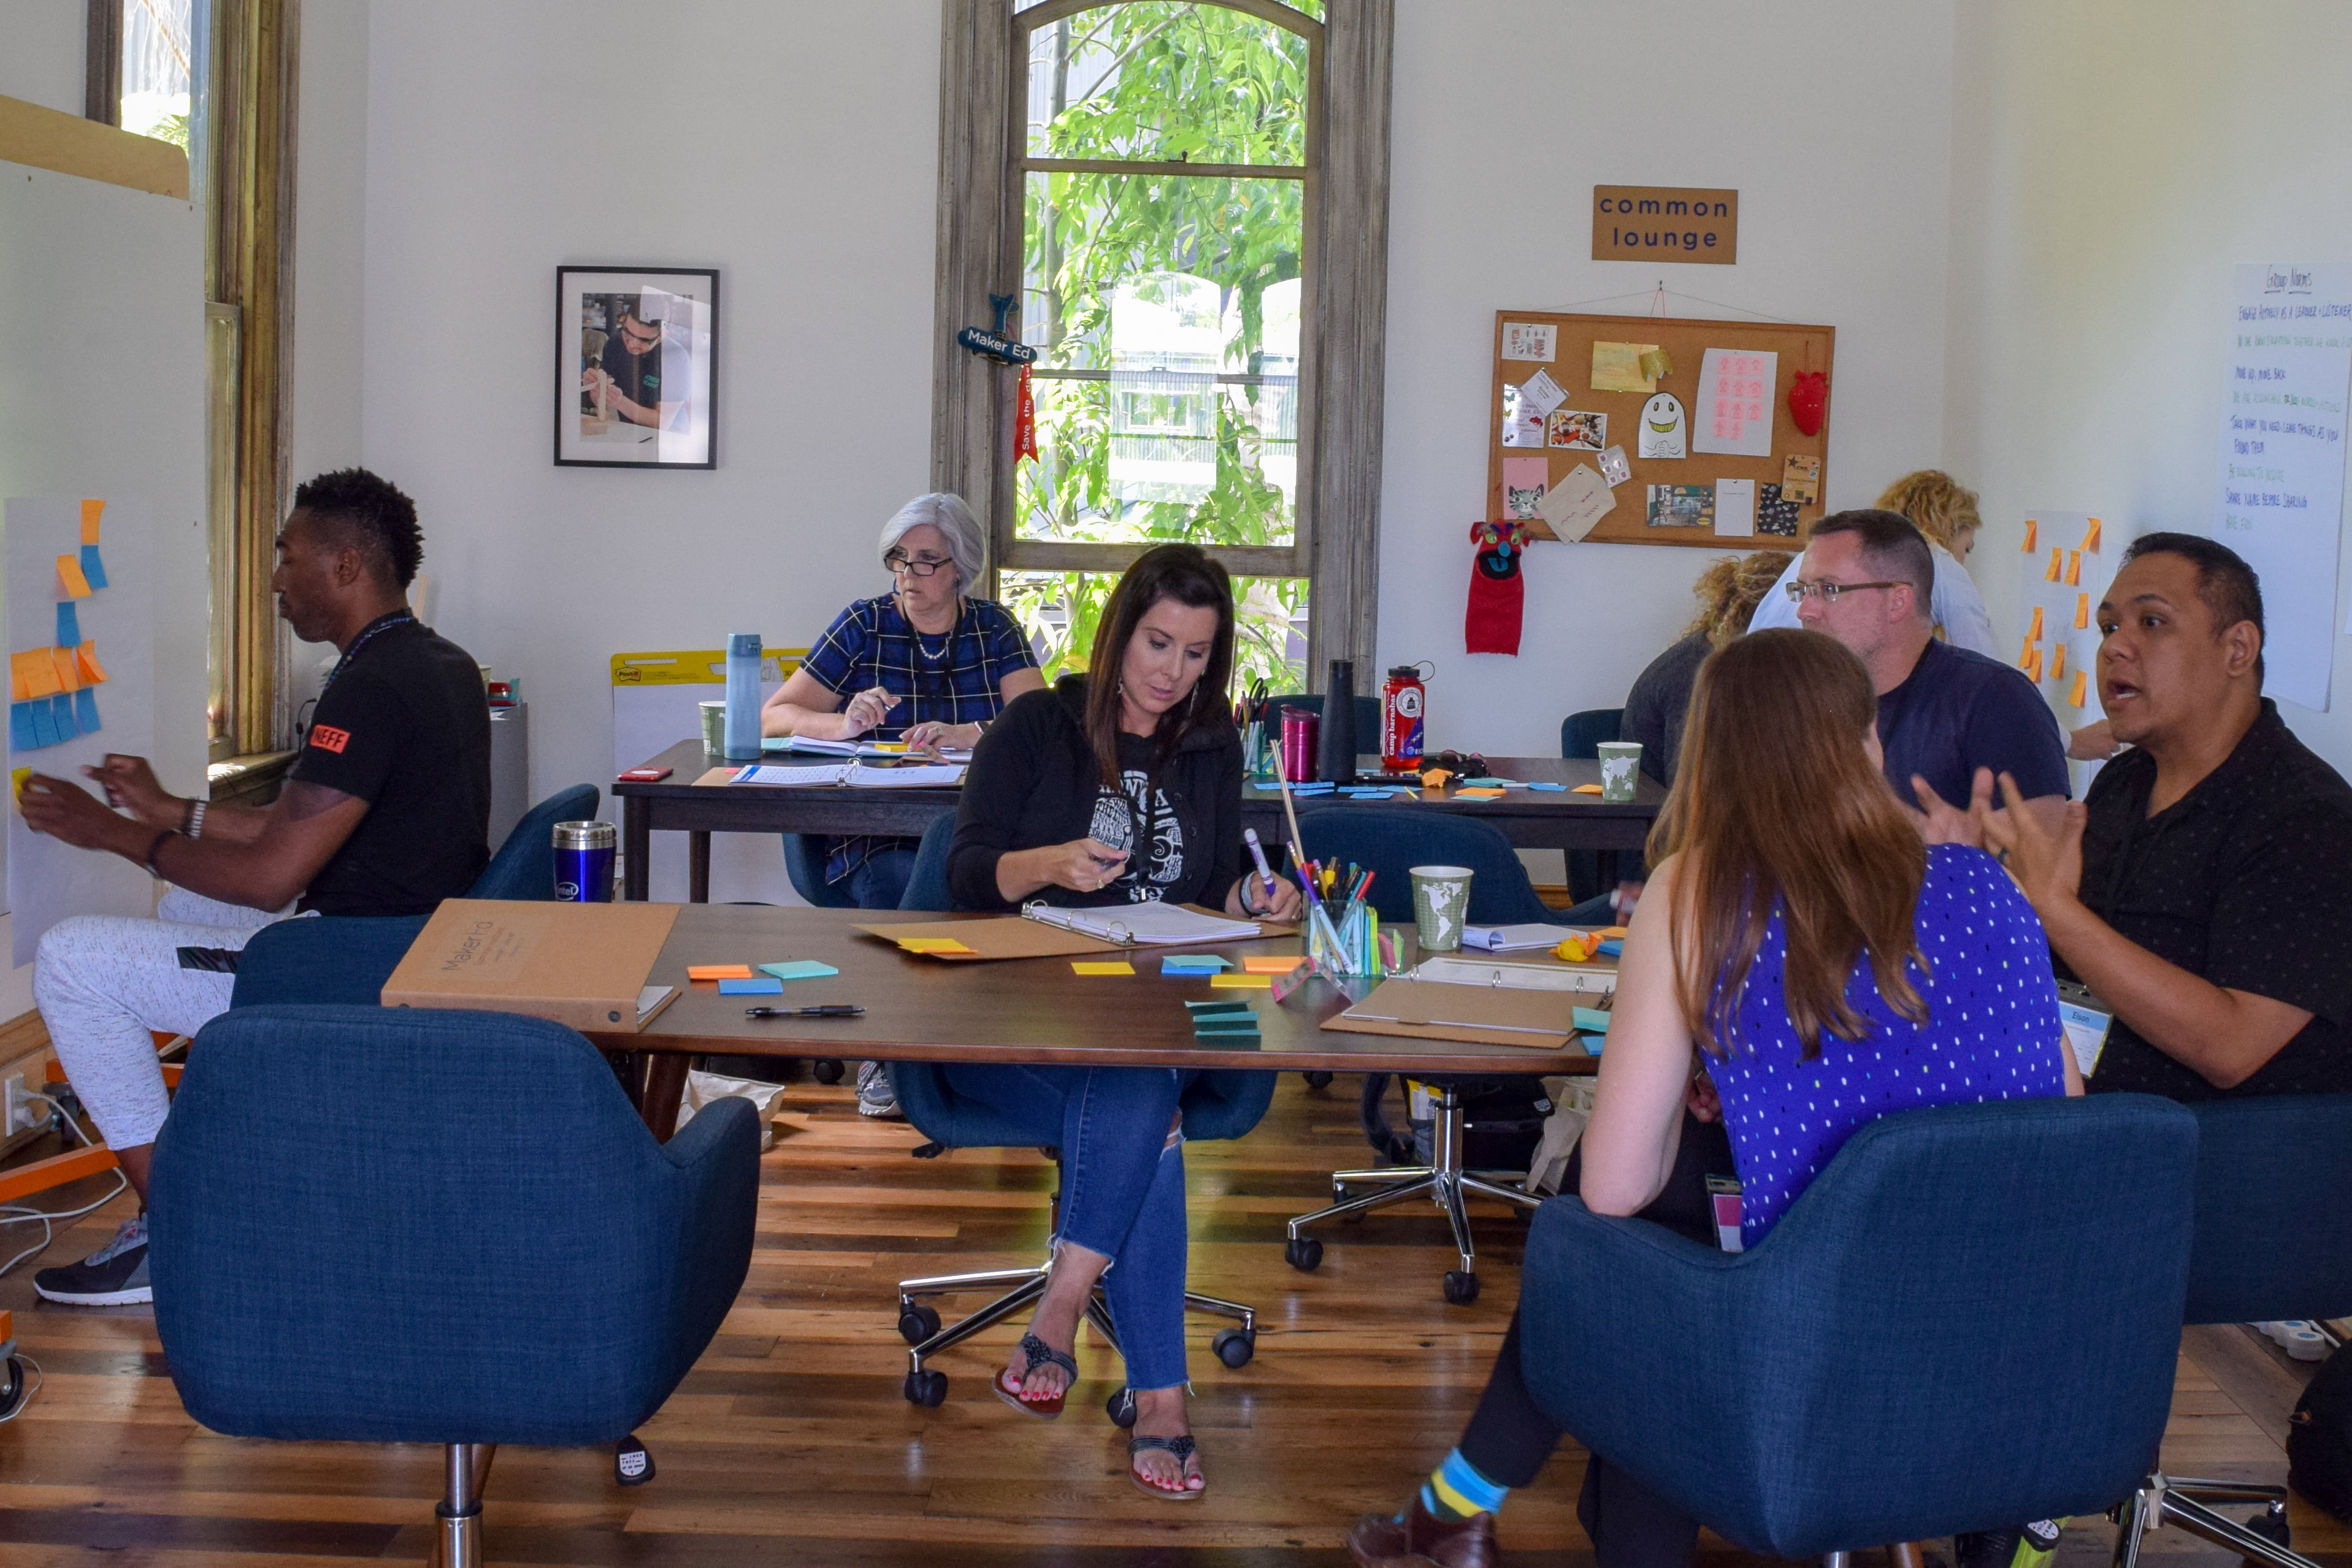 A group shot of six workshop participants. Some attendees work independently while others talk in small groups of 2 or 3 people.